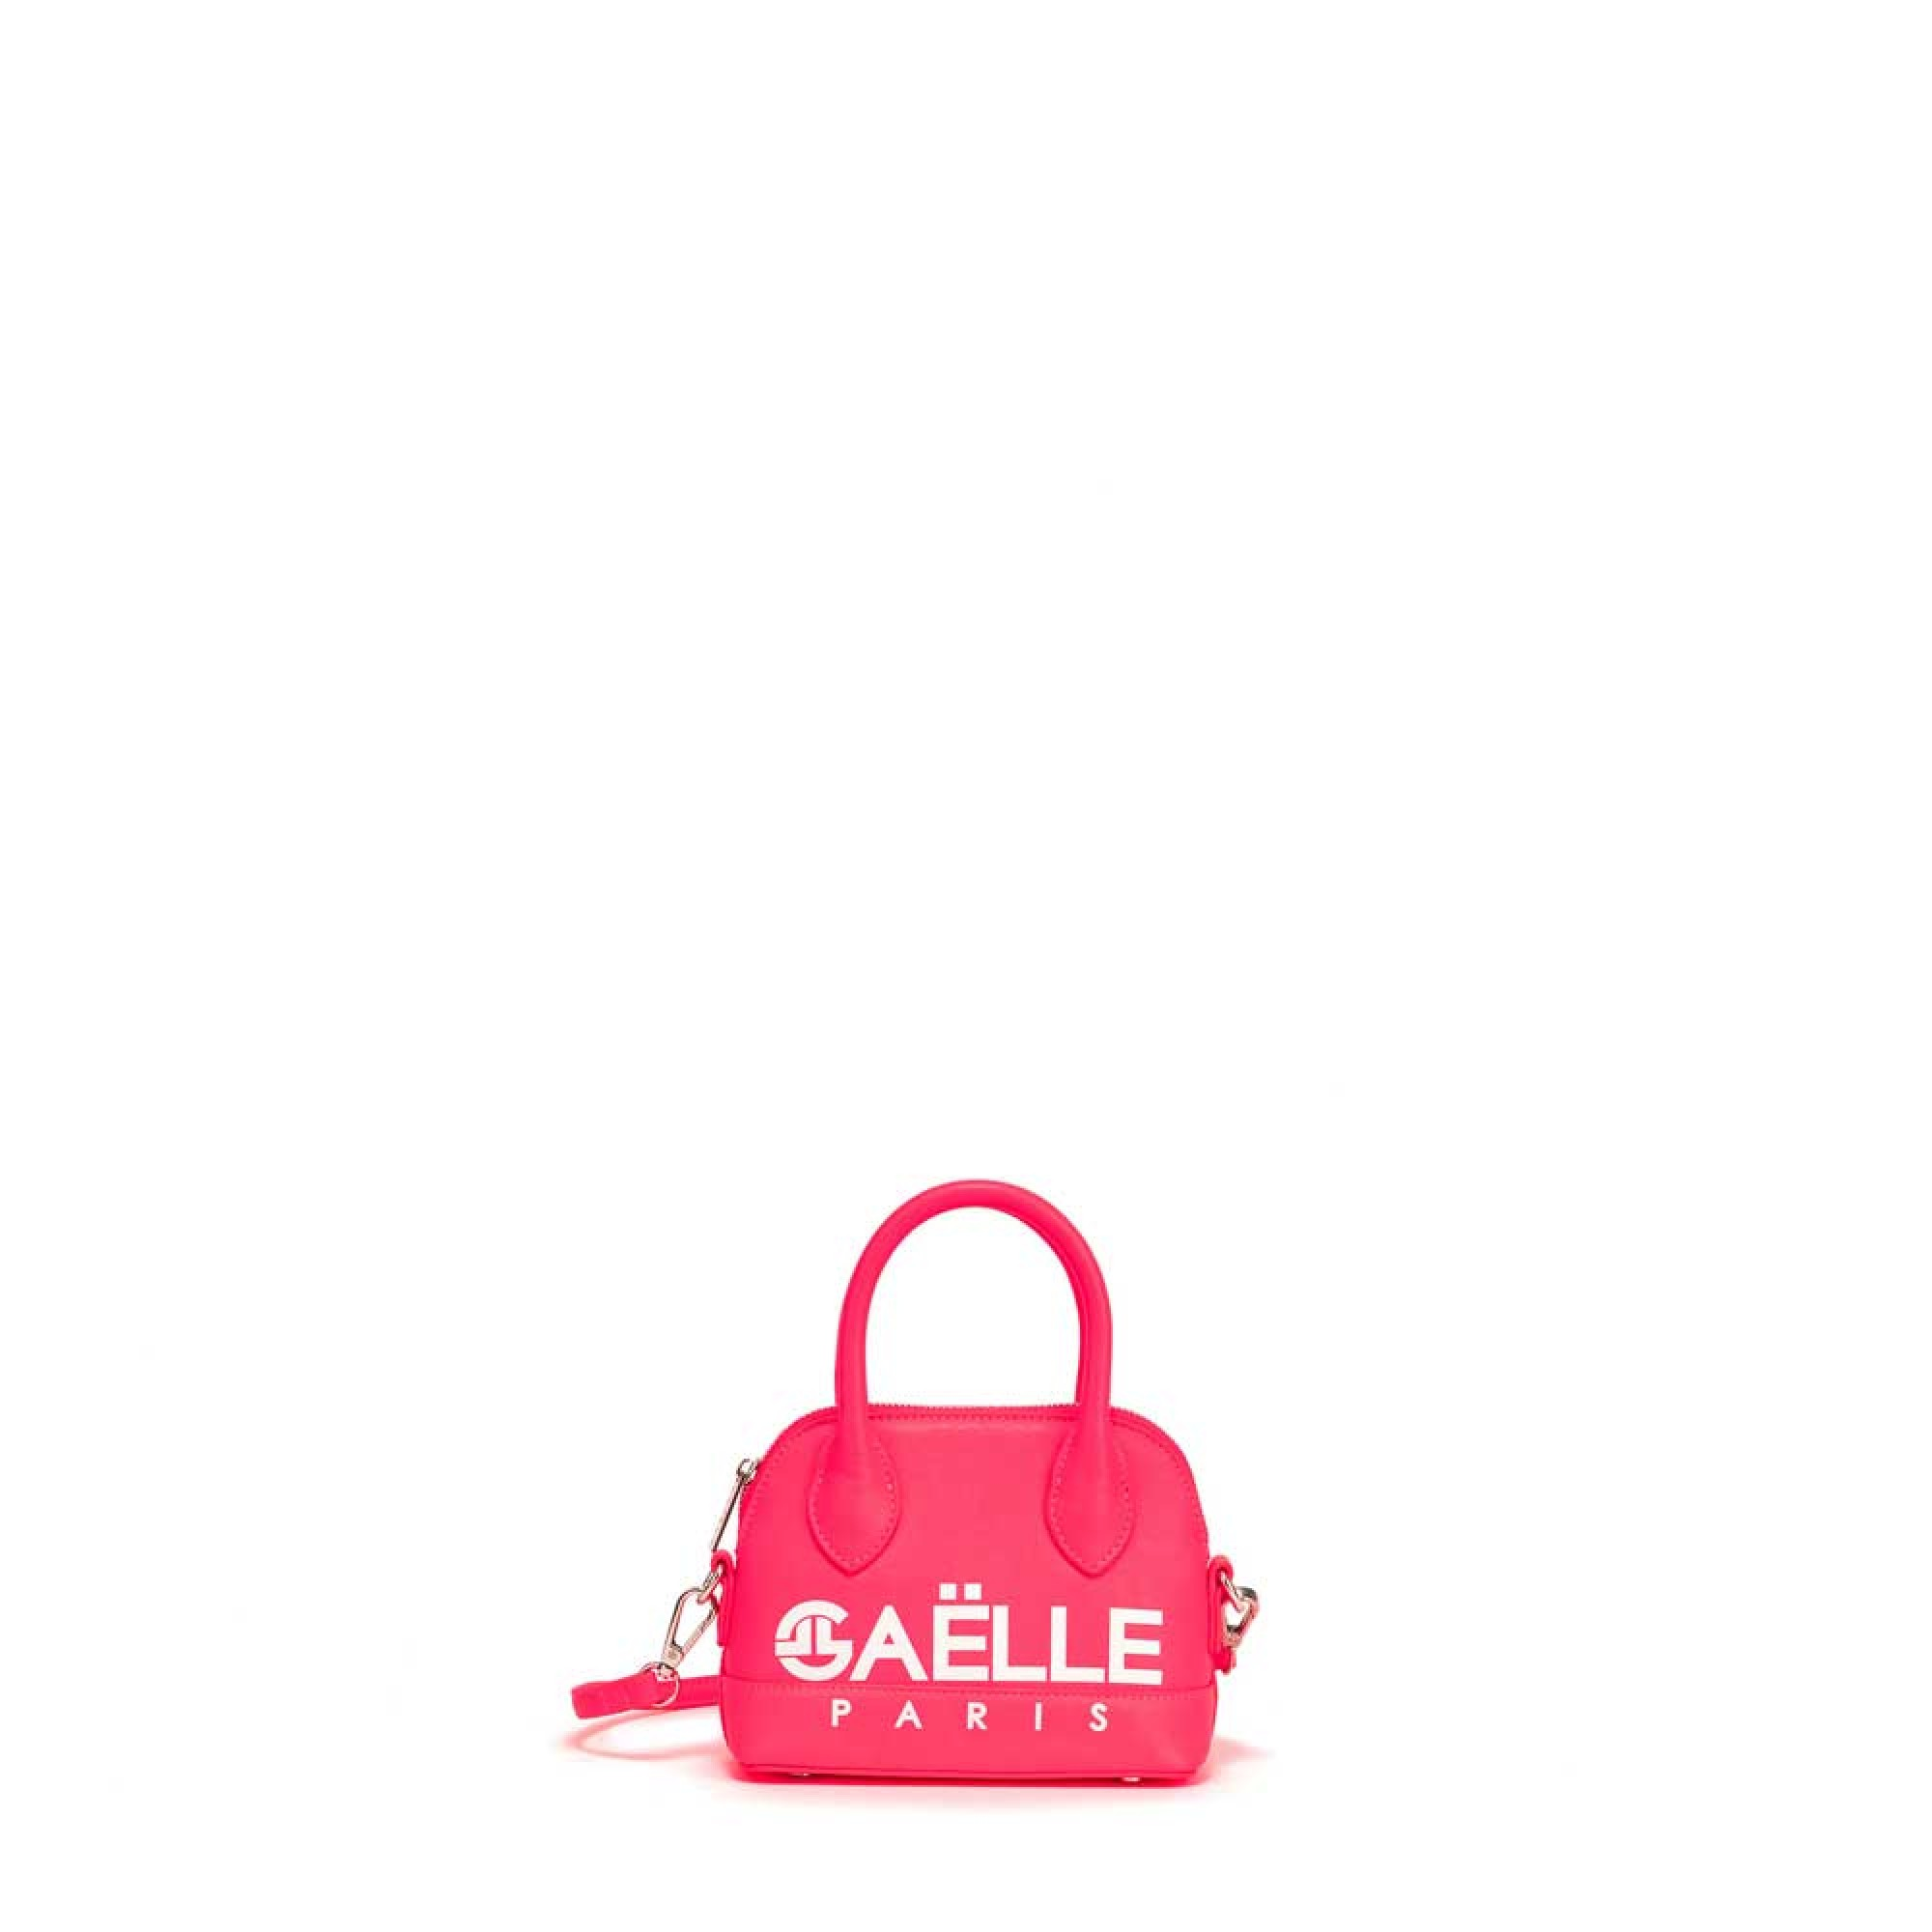 SHOULDER BAG - GBDA1510 - GAELLE PARIS